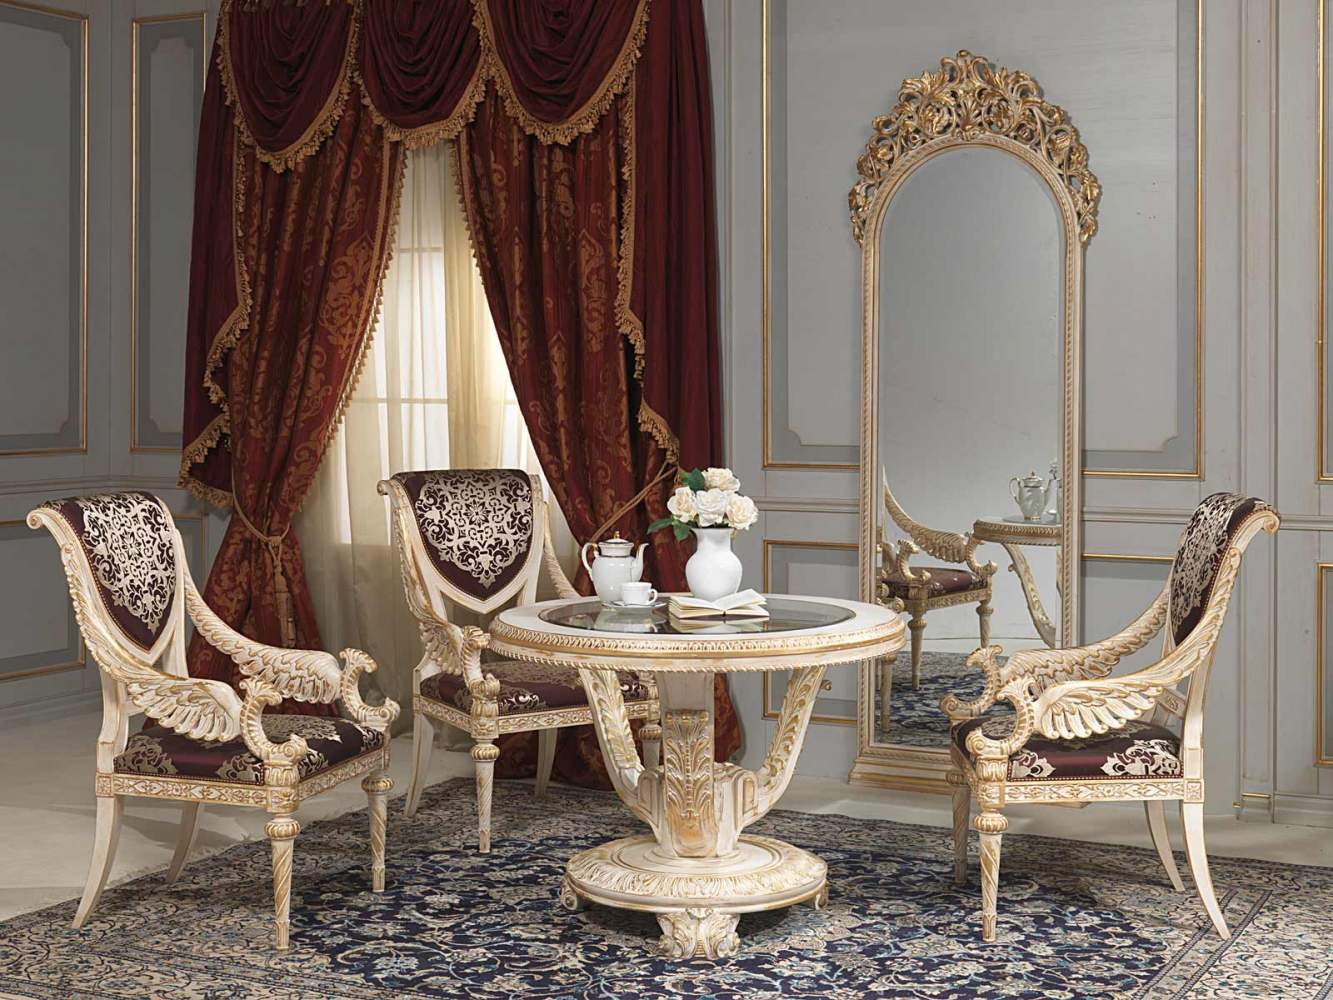 Table and mirror in Louis XVI style